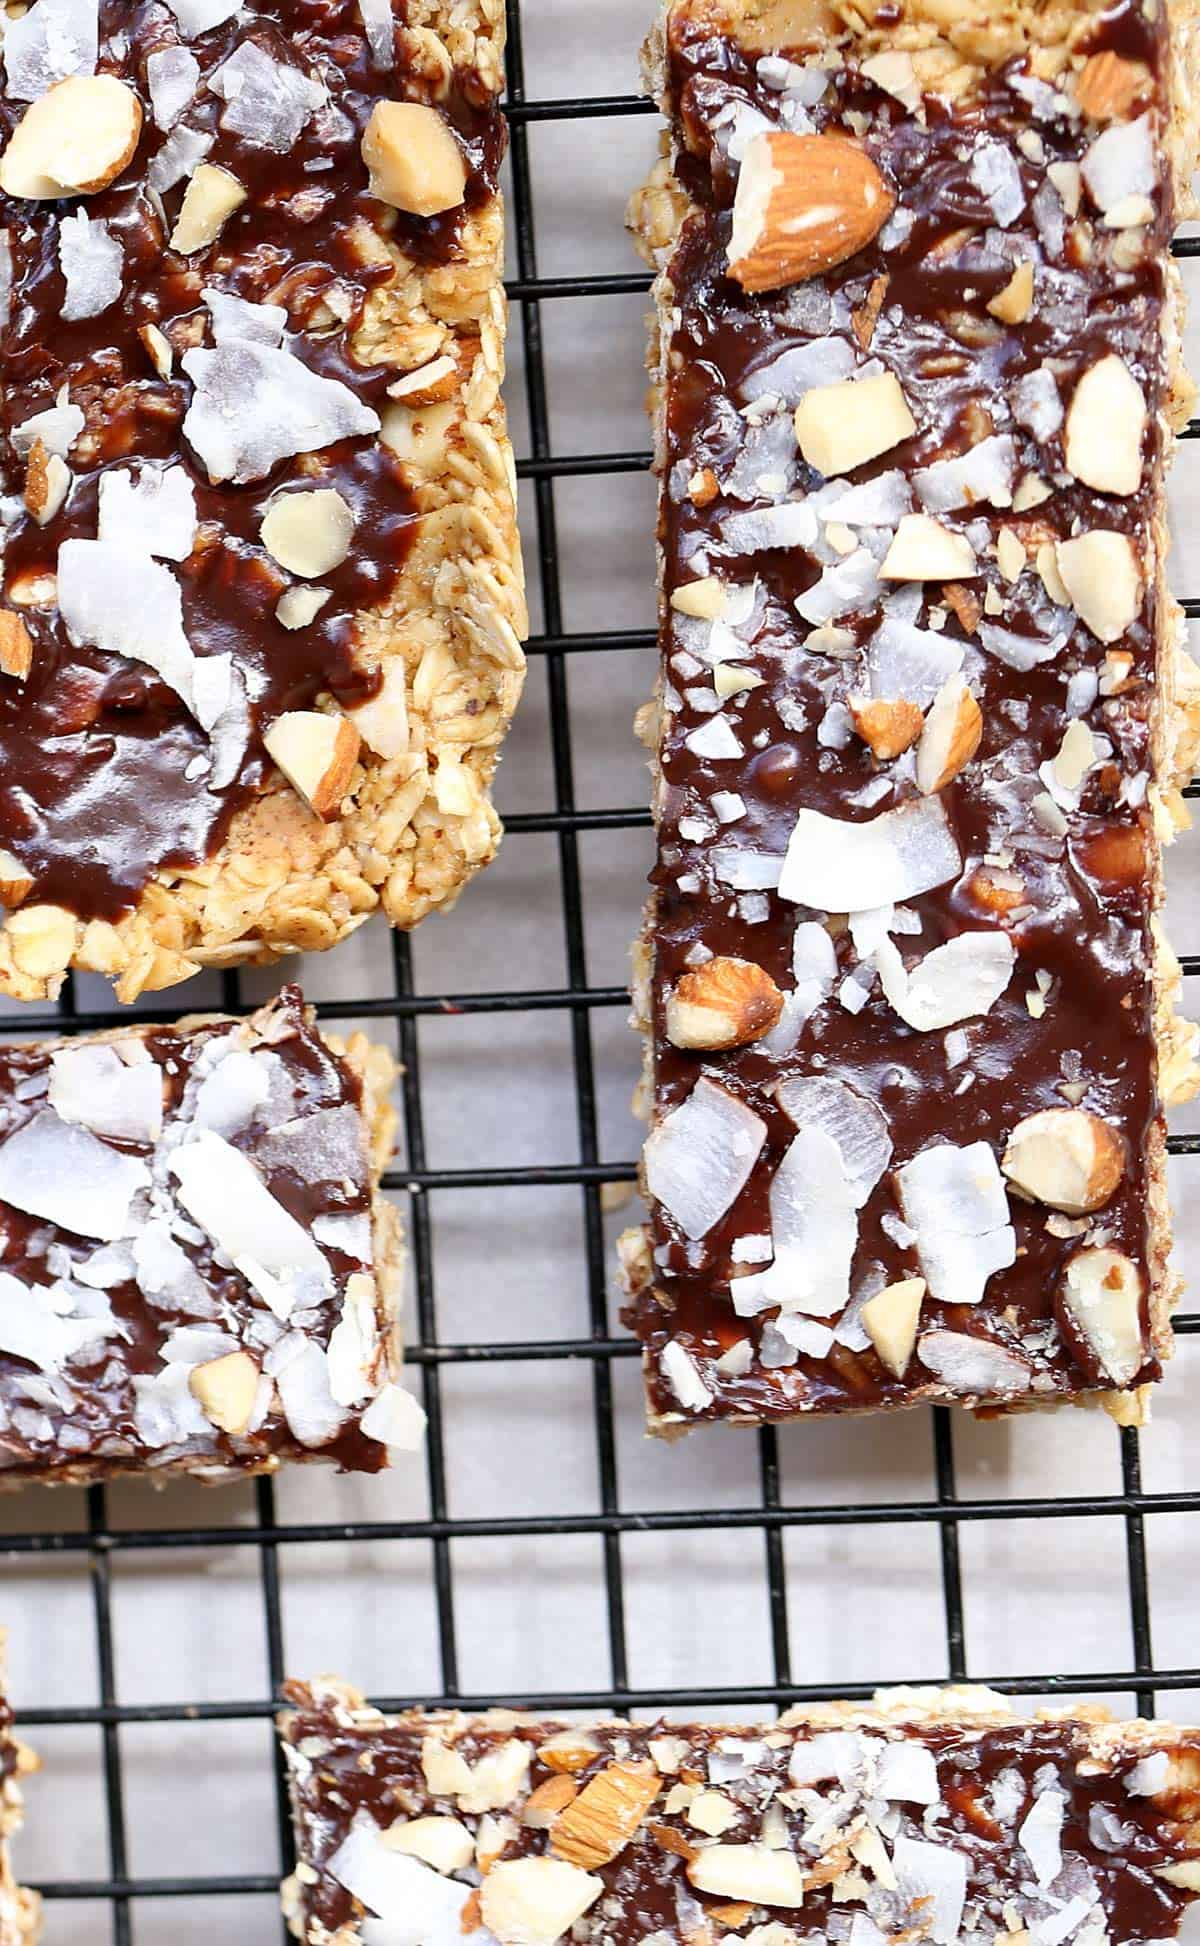 homemade granola bar with chocolate and nuts